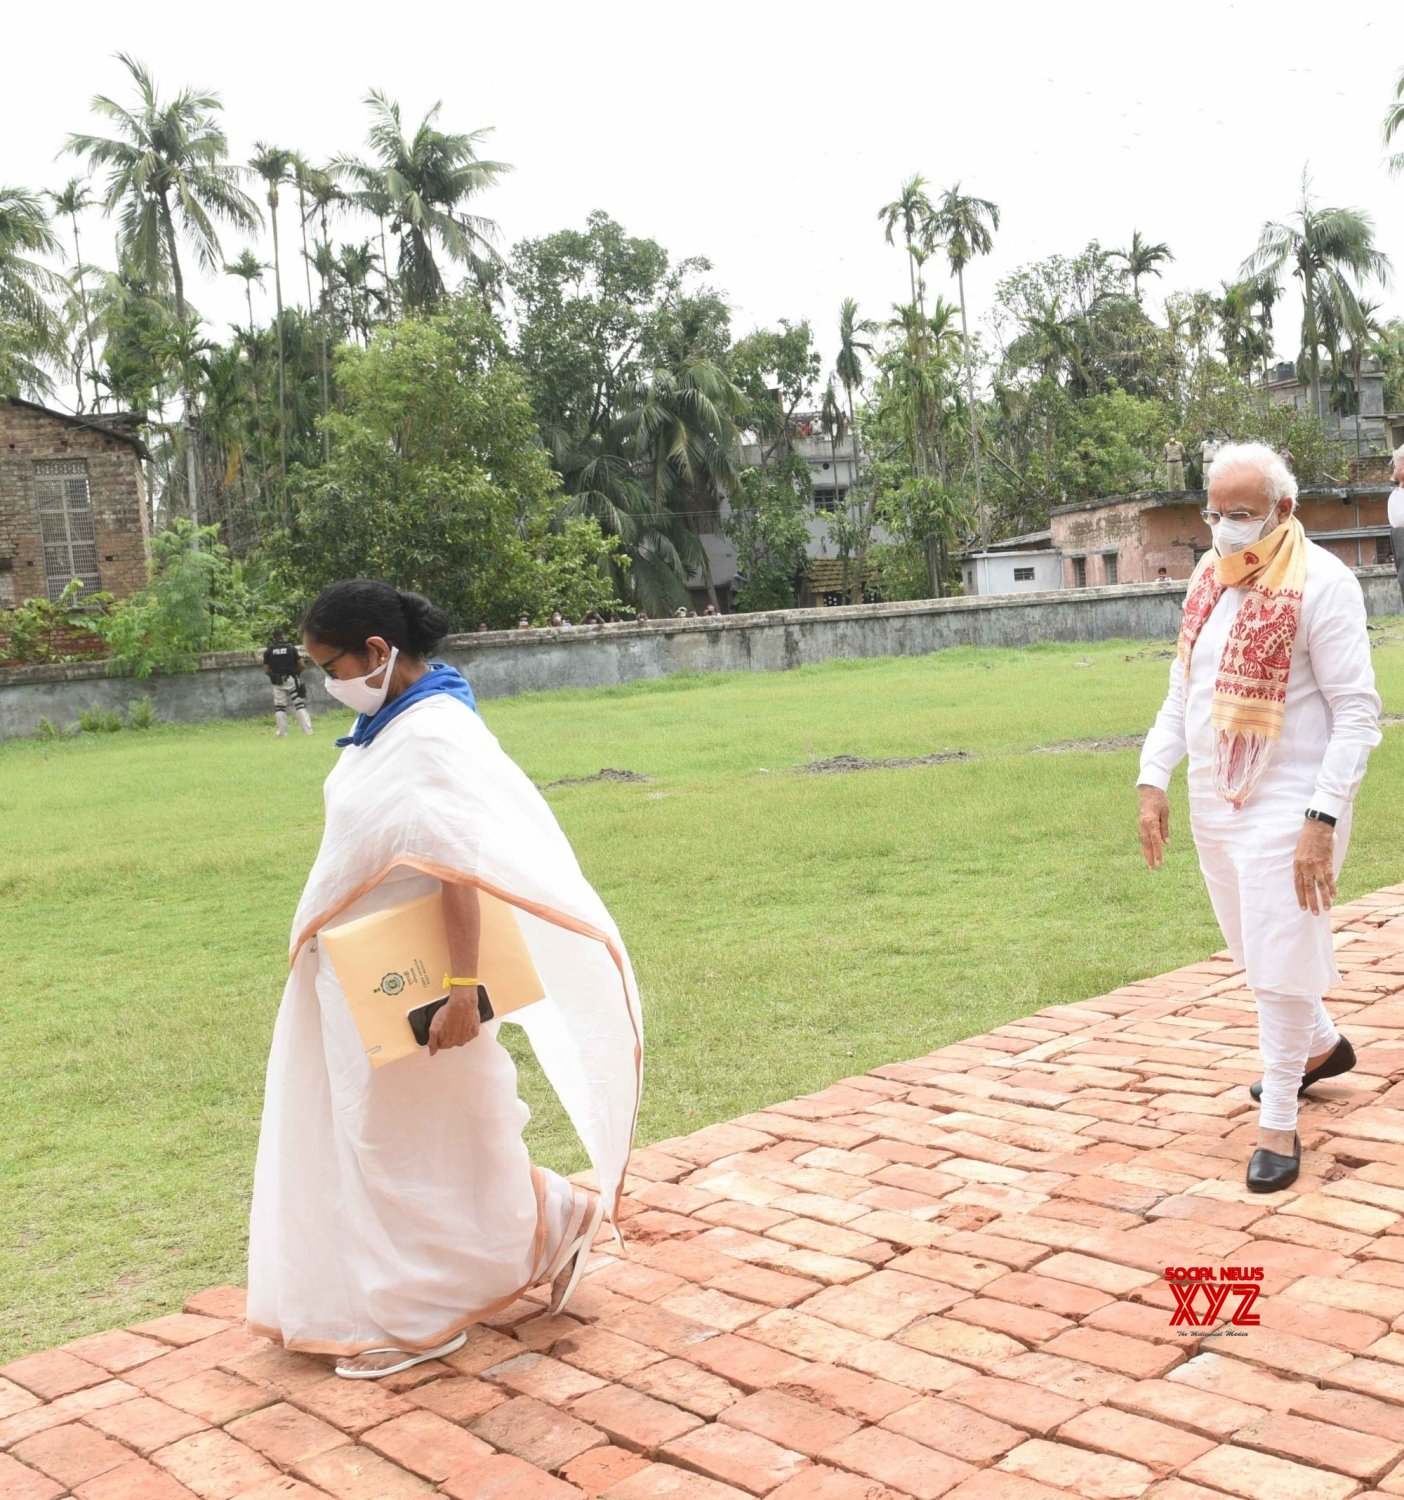 Basirhat: PM Modi meets WB Governor, CM over Cyclone Amphan #Gallery